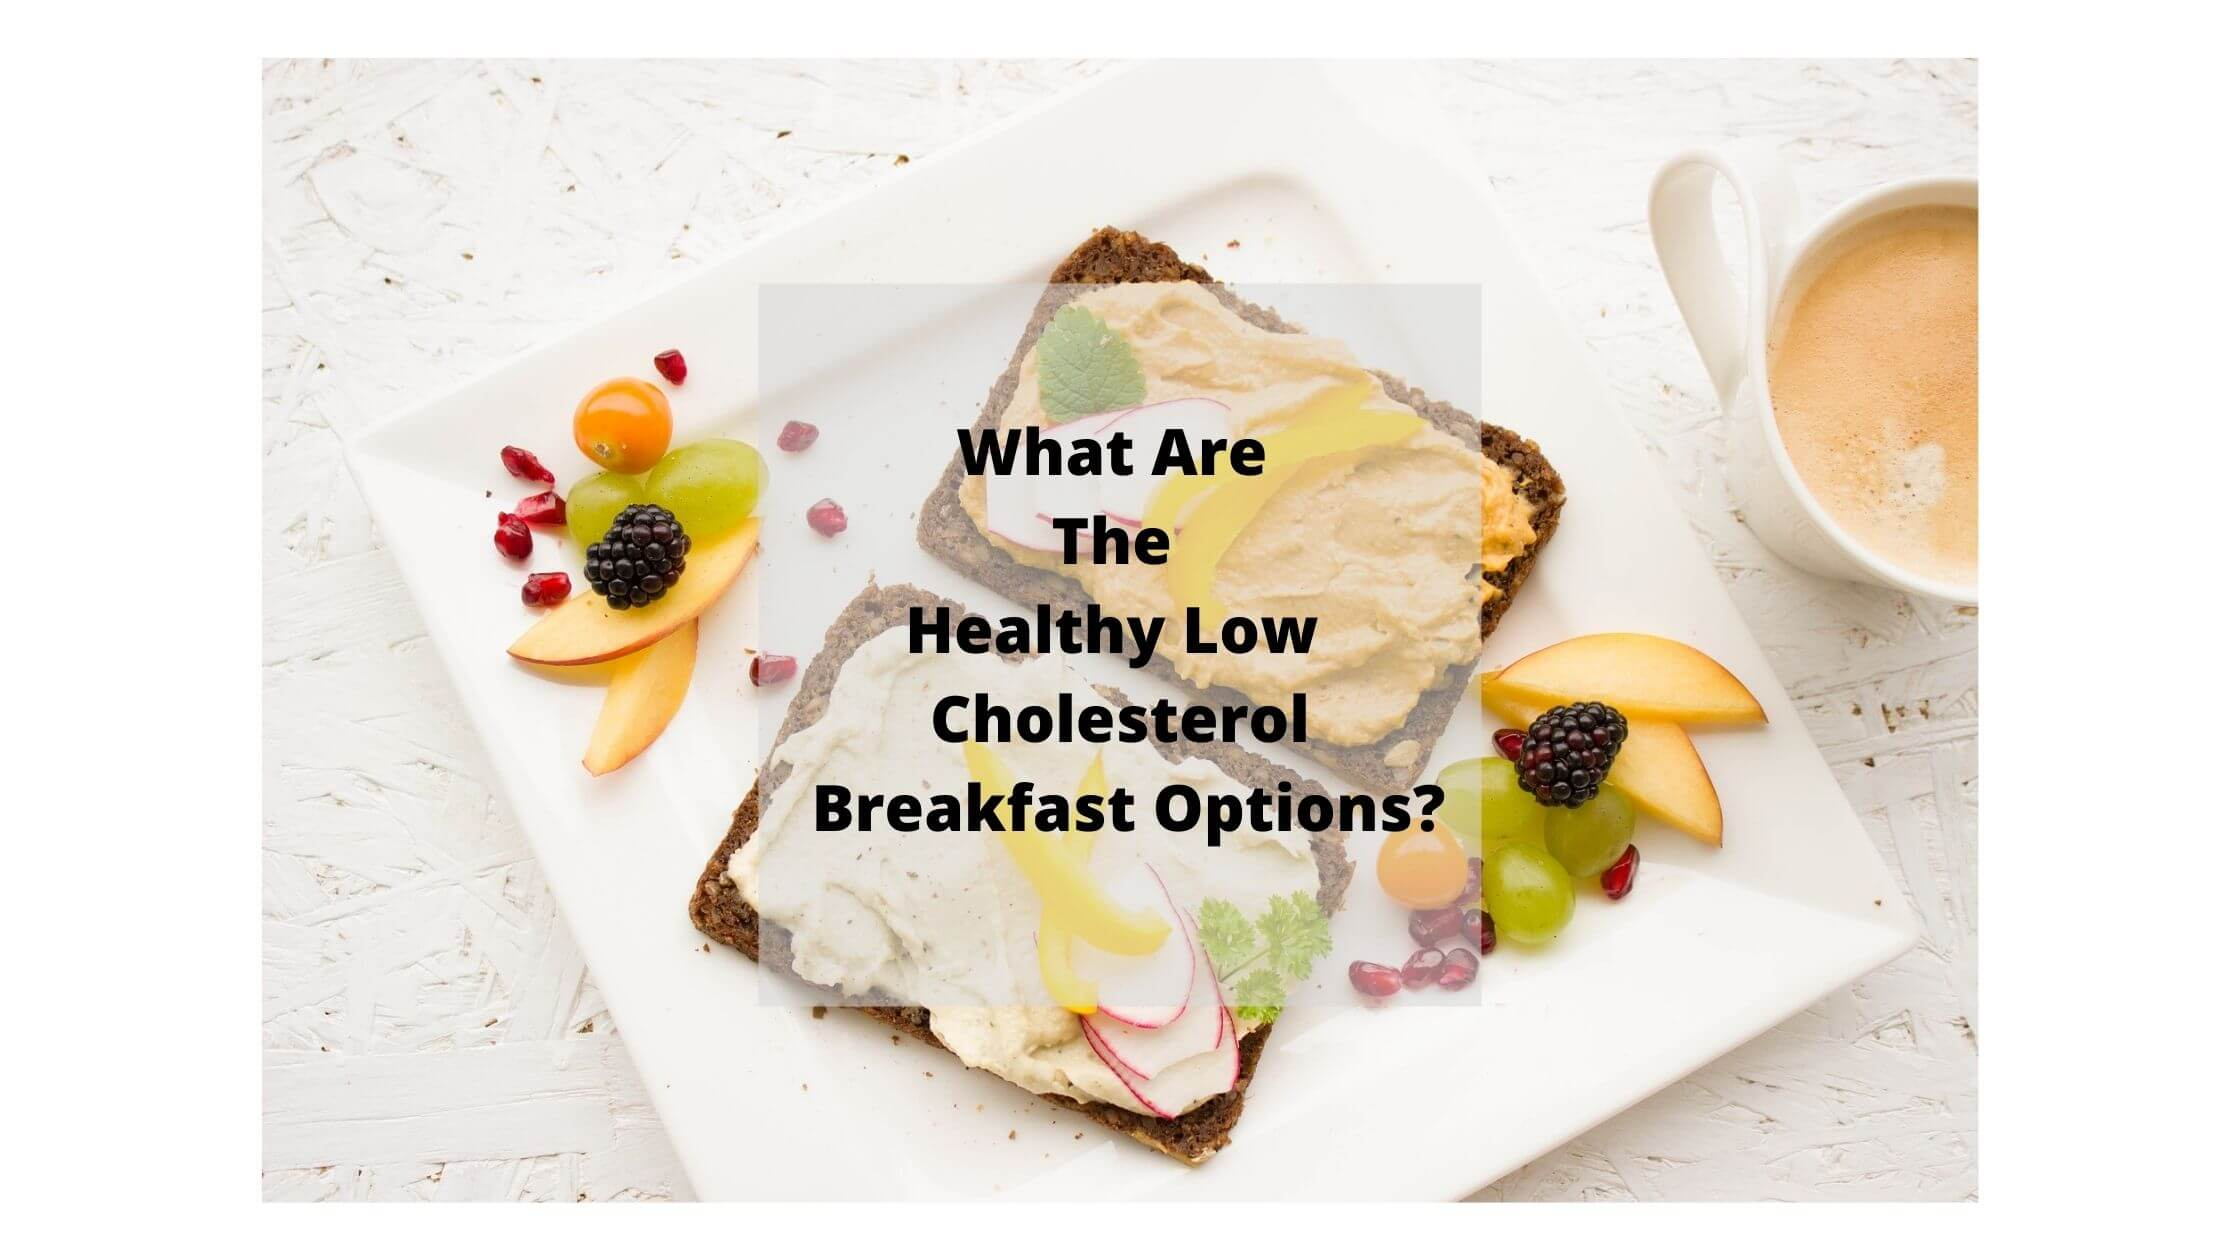 What Are The Healthy Low Cholesterol Breakfast Options?